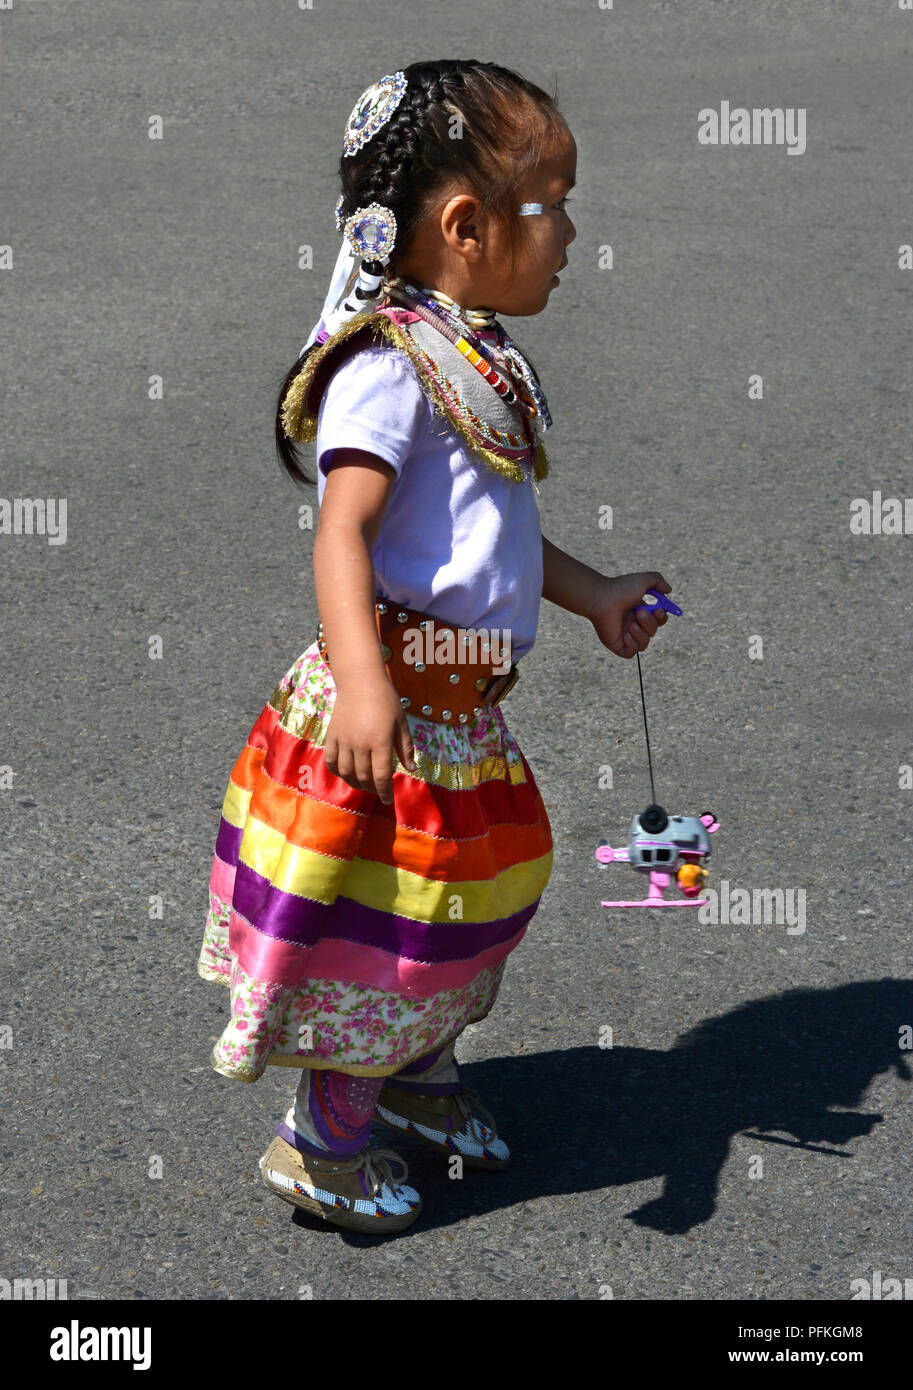 A Native-American child plays with a toy at the Santa Fe Indian Market. - Stock Image